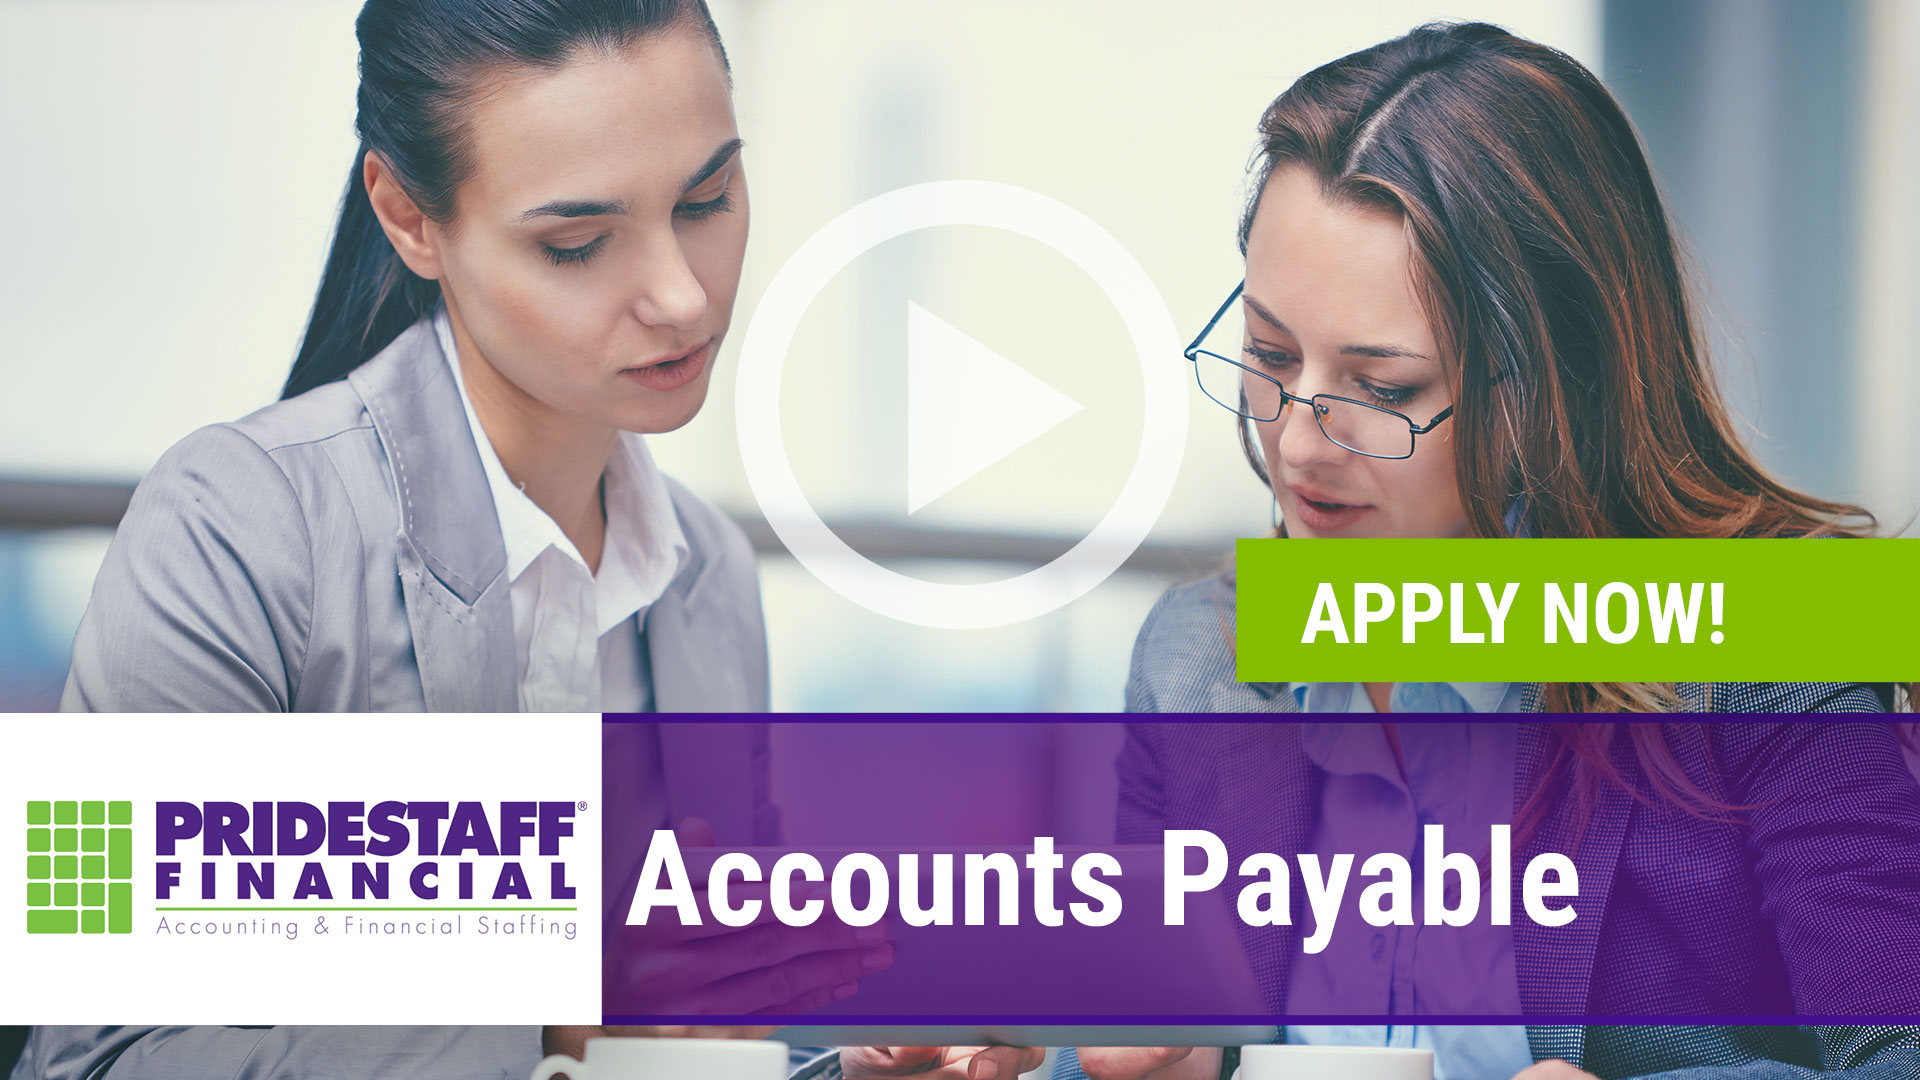 Watch our careers video for available job opening Accounts Payable in Addison, Texas